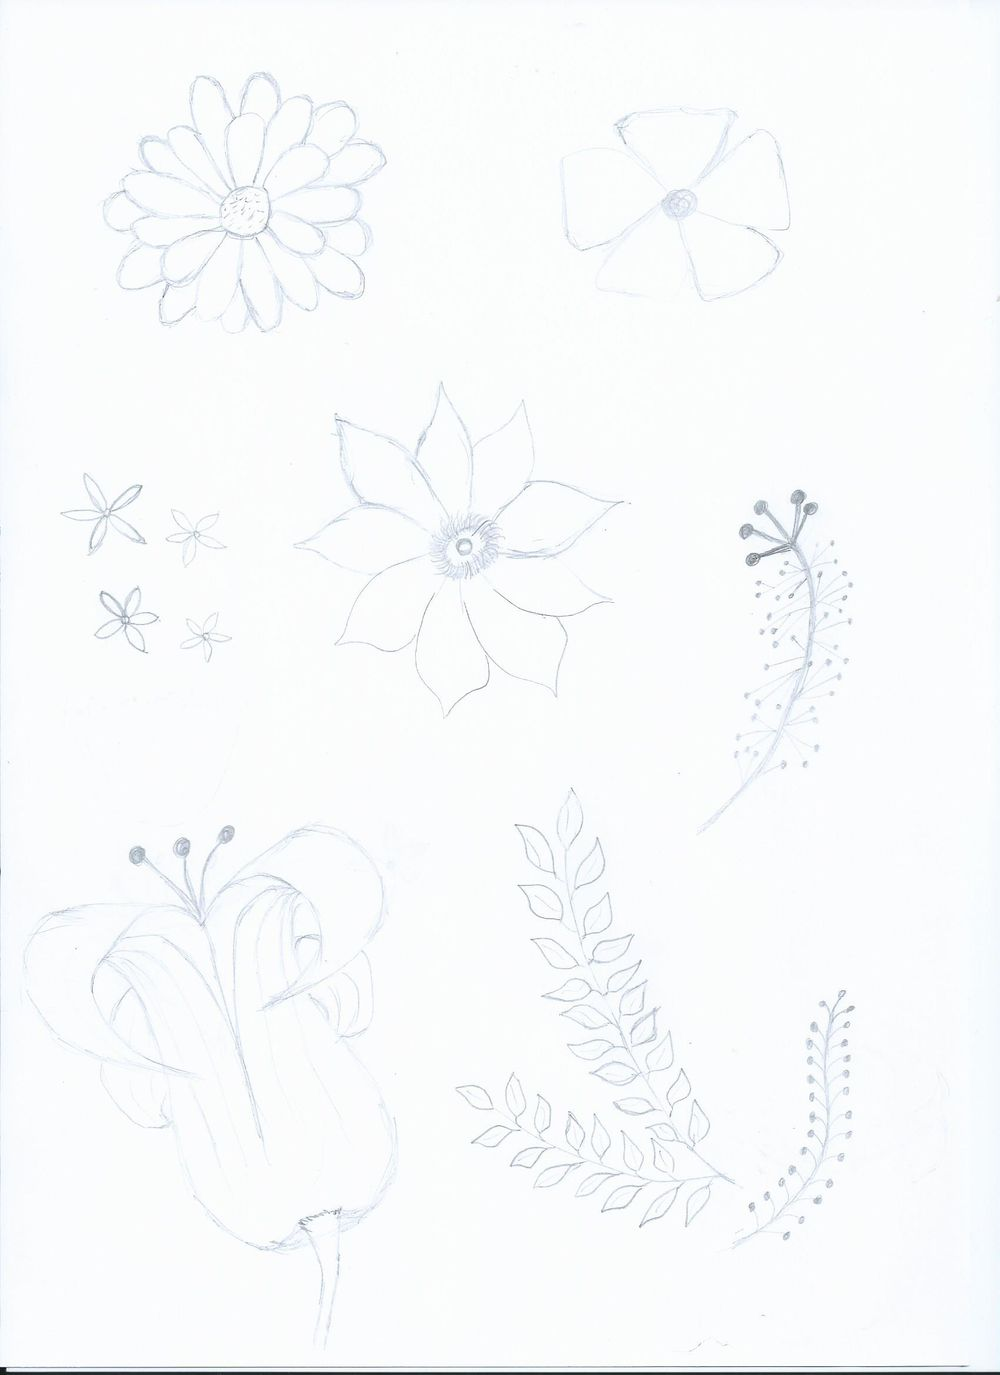 Spring mood - image 2 - student project